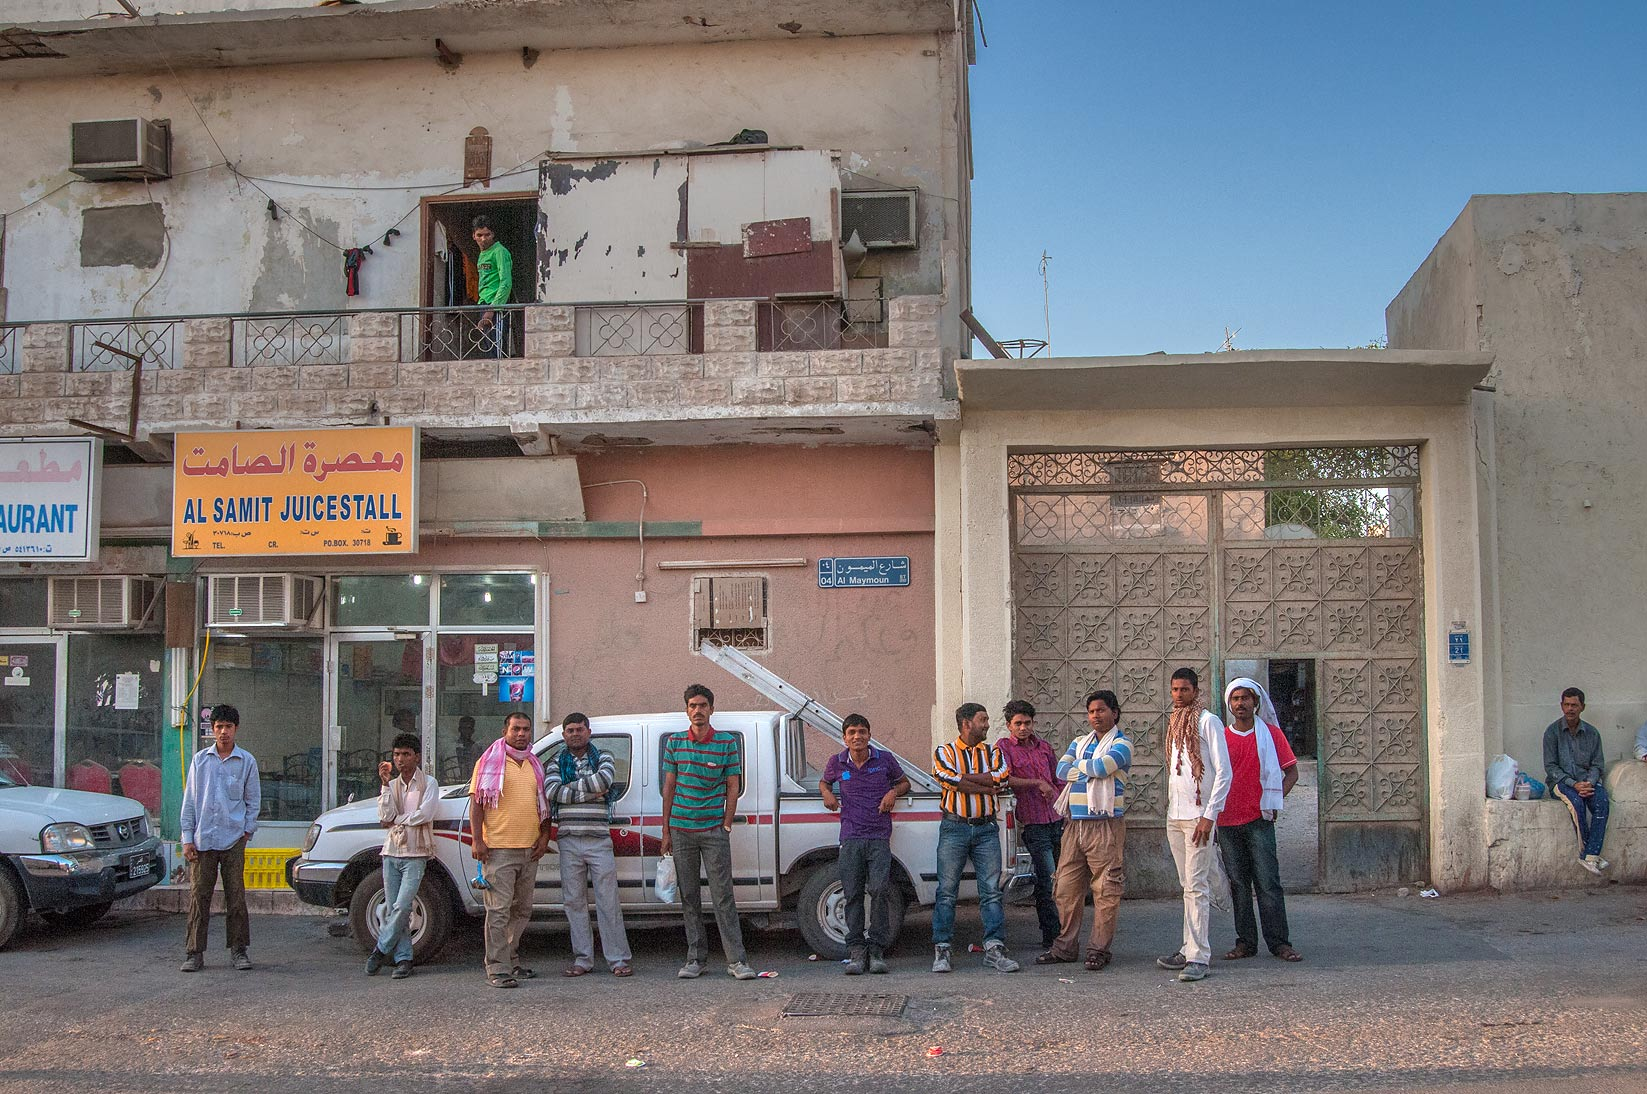 People gathering at morning near Al Samit...St., Musheirib area. Doha, Qatar